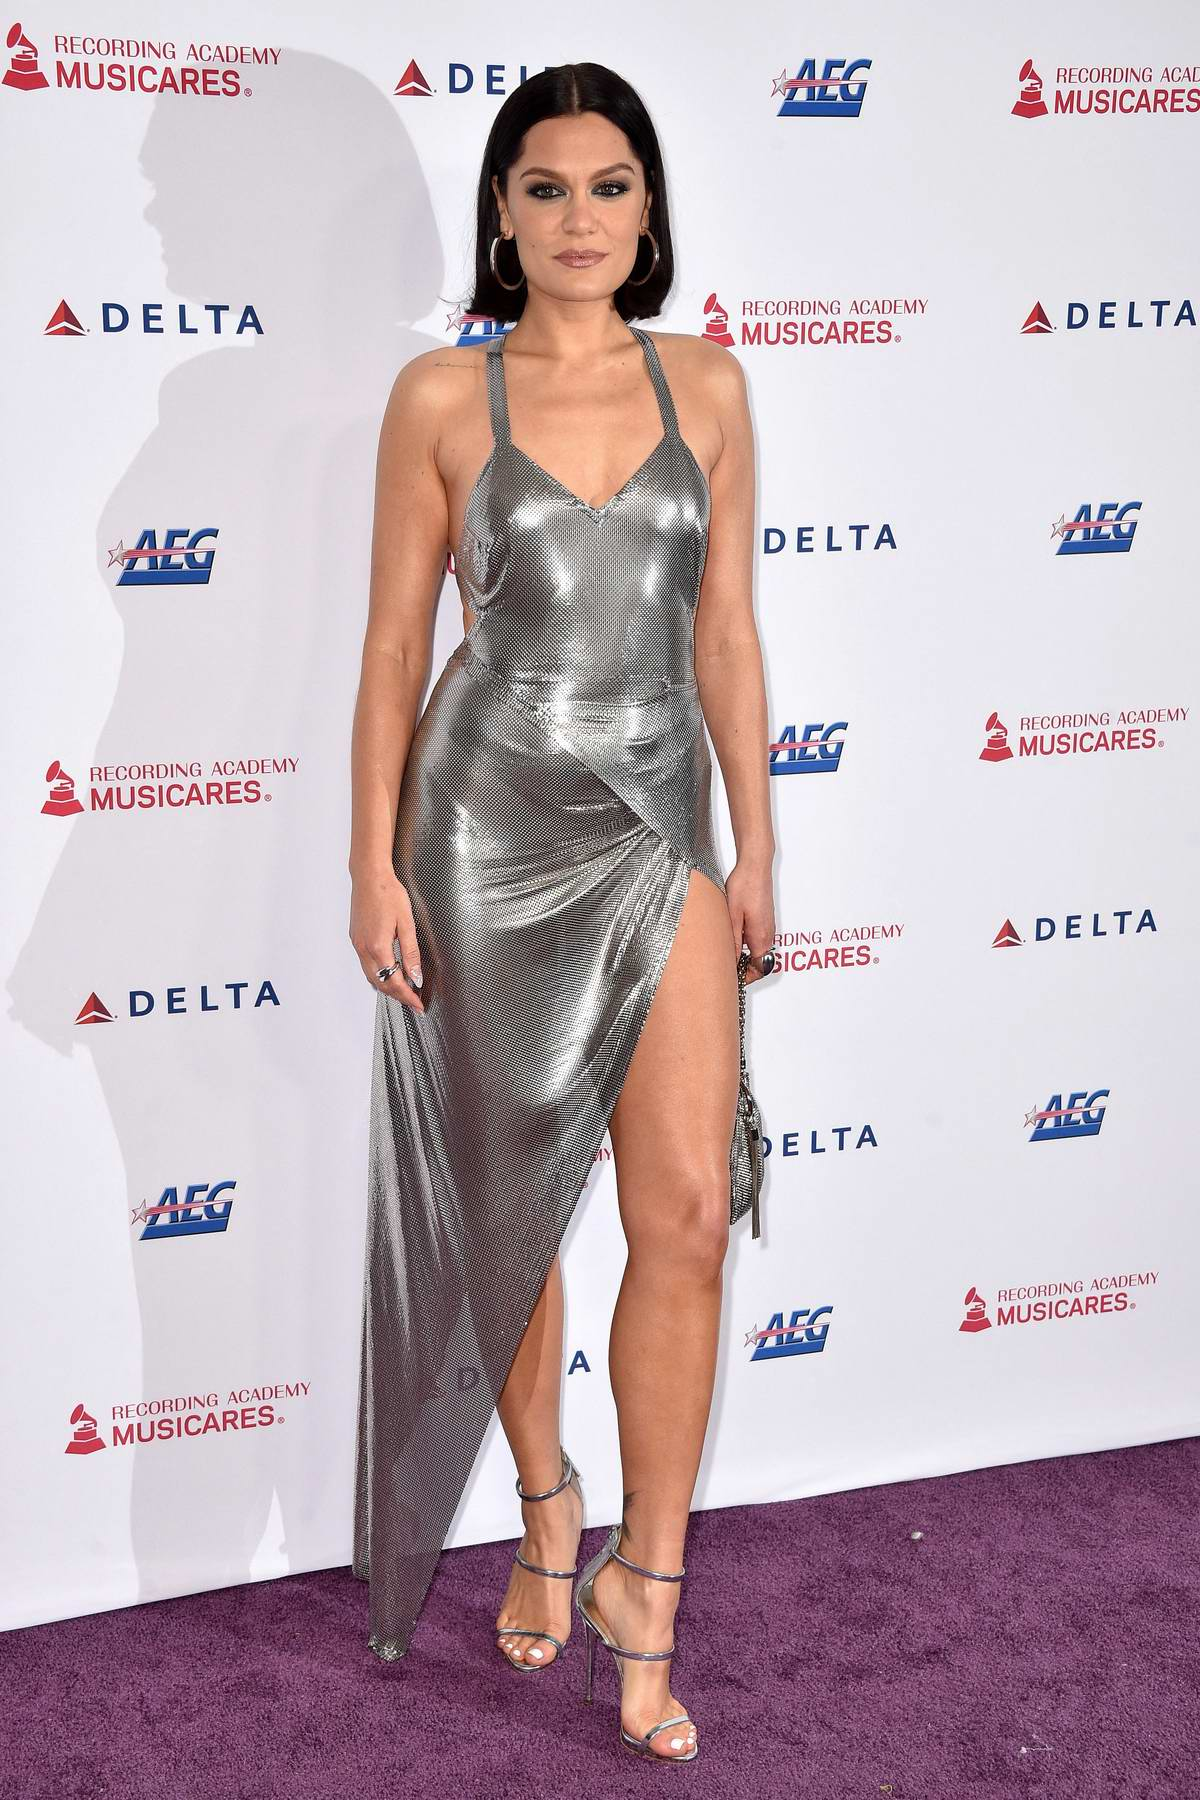 Jessie J attends the 2020 MusiCares Person of the Year Gala in Los Angeles